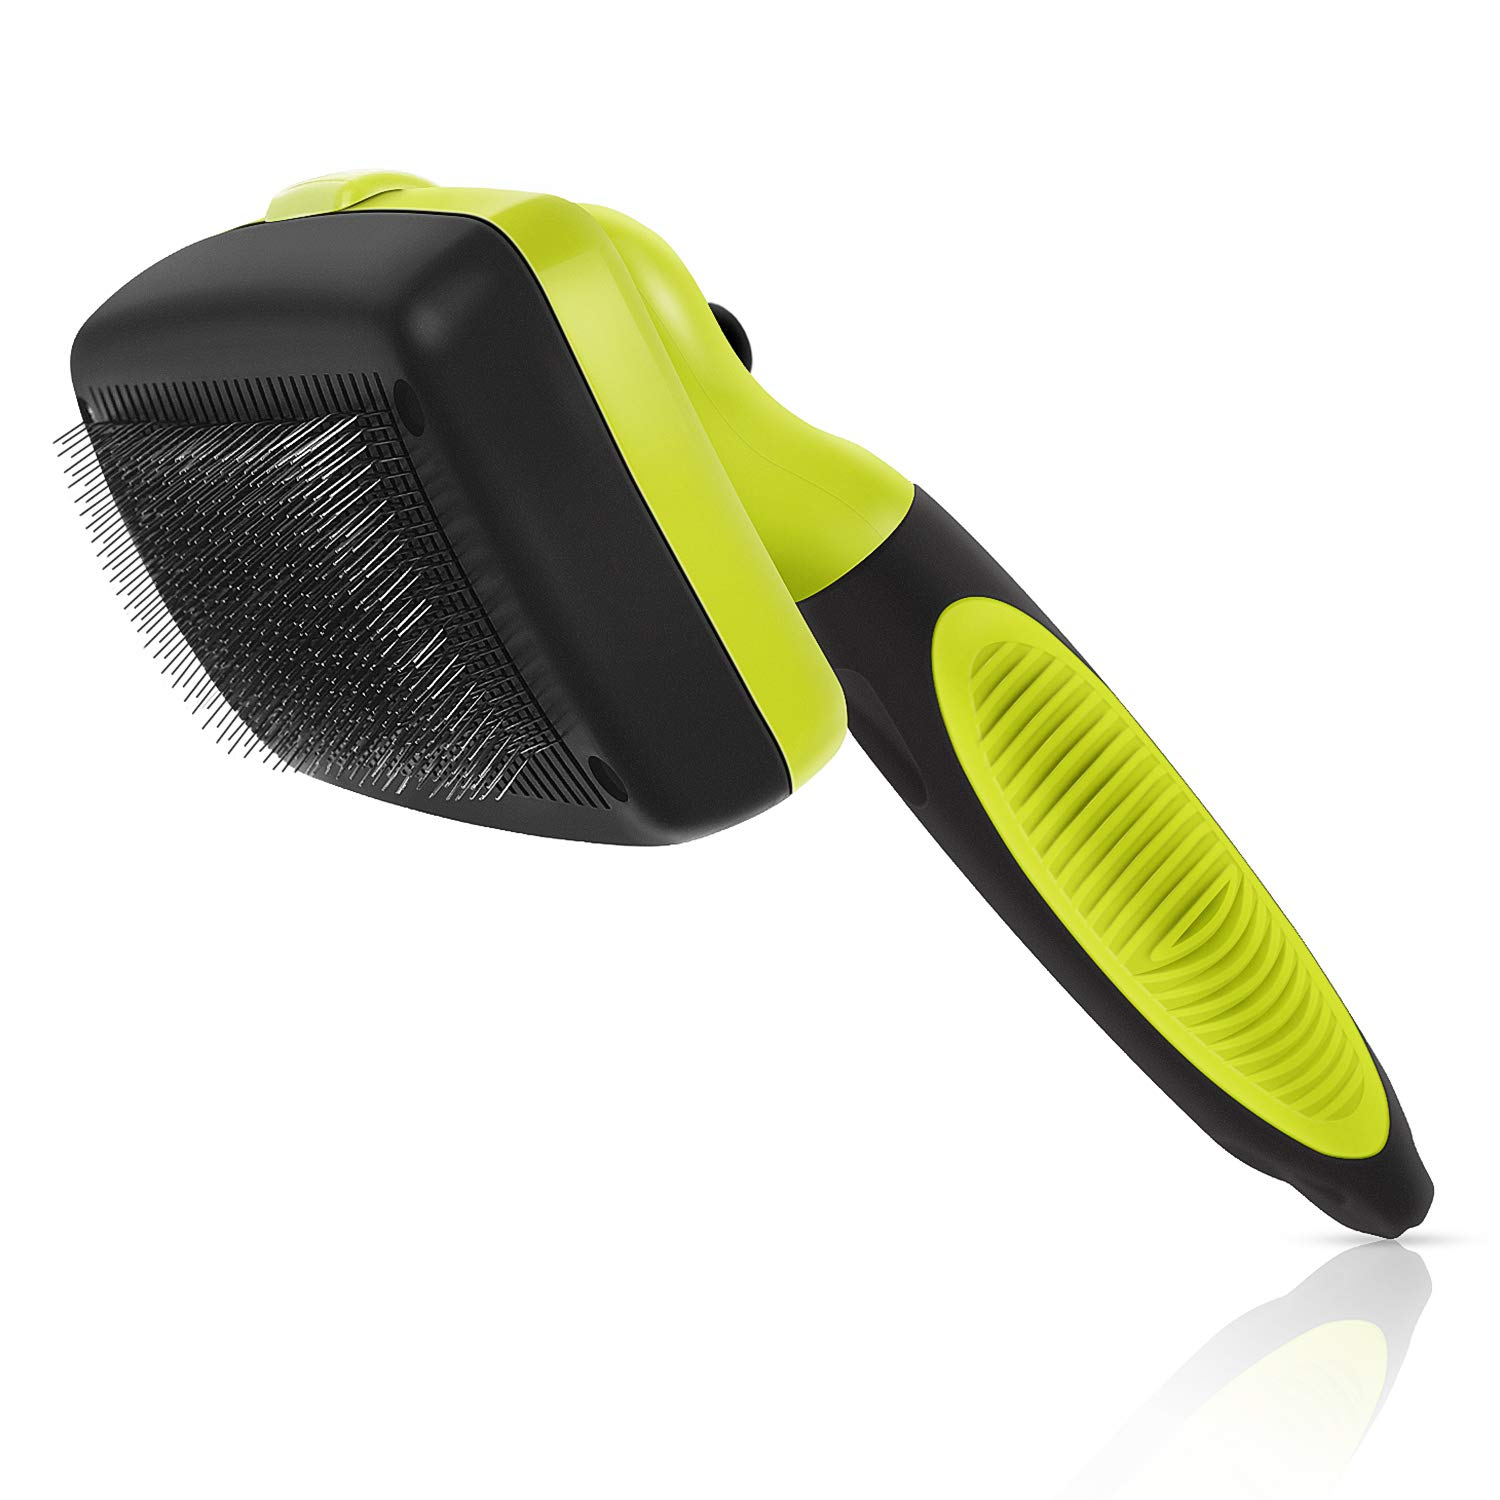 Dog Brush Cat Pet Grooming Brush Comb Self Cleaning Slicker Brush Reduces Shedding Up to 95% Removes Tangles De Sheds for Long Thick & Short Hair Pet Green and Black